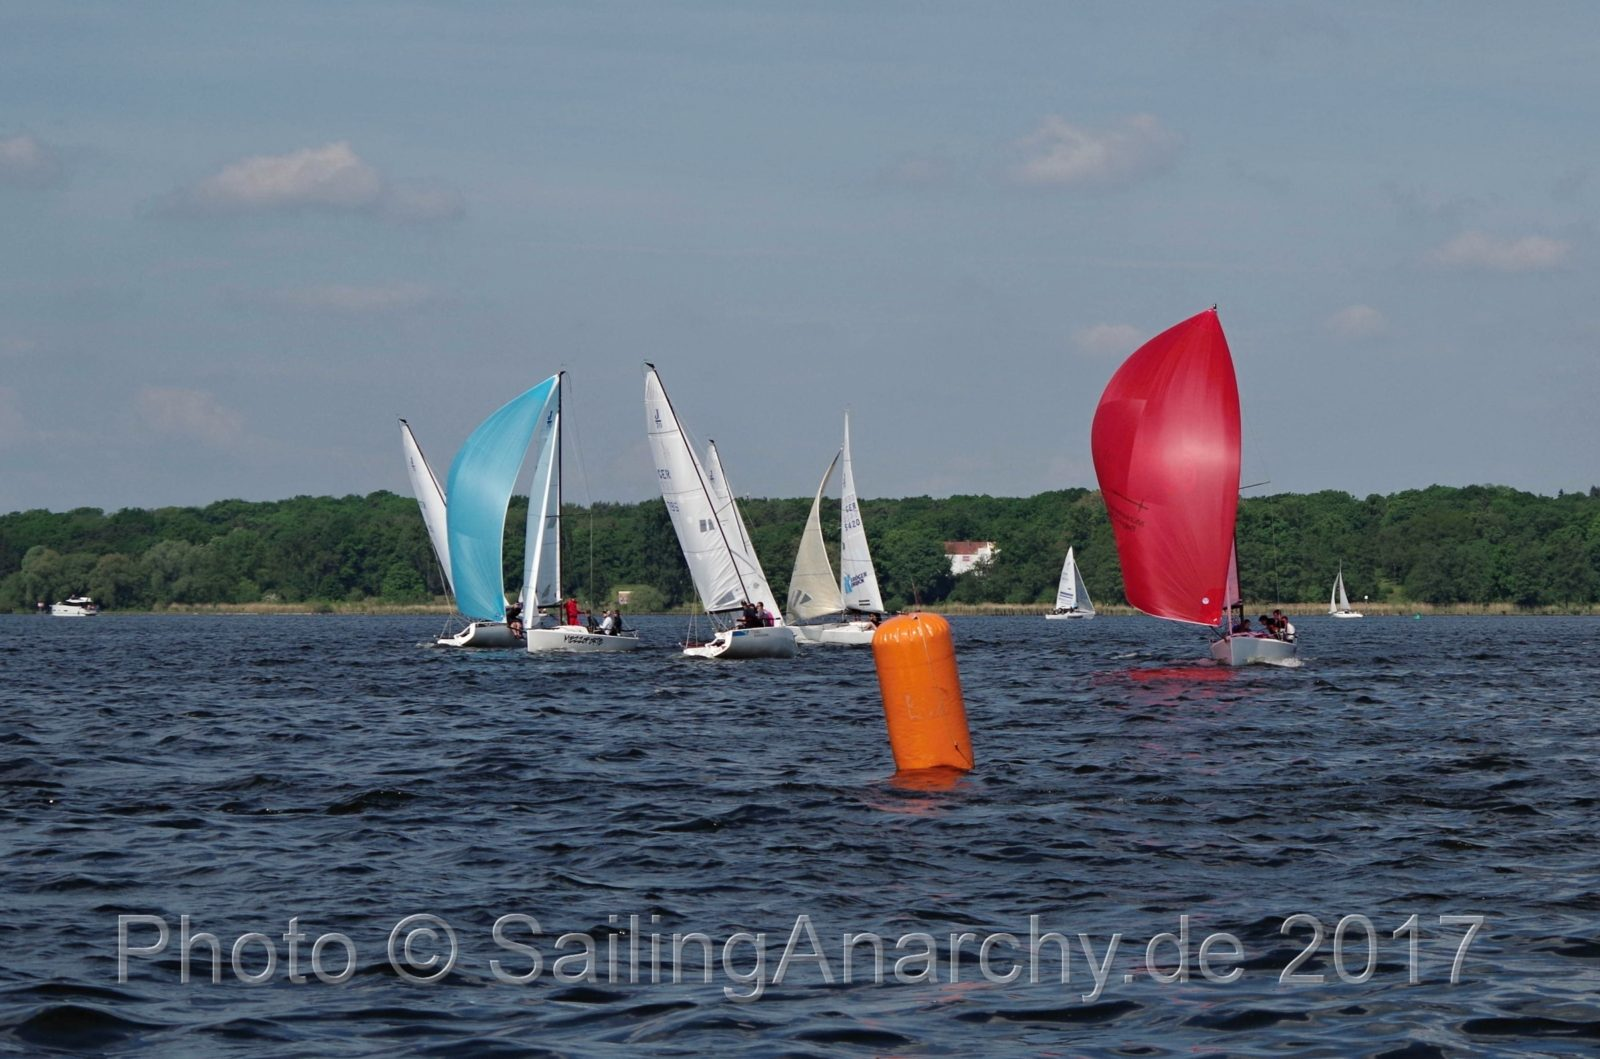 Rupenhorn Regatta 2017 - J 70 - Photo © SailingAnarchy.de 2017